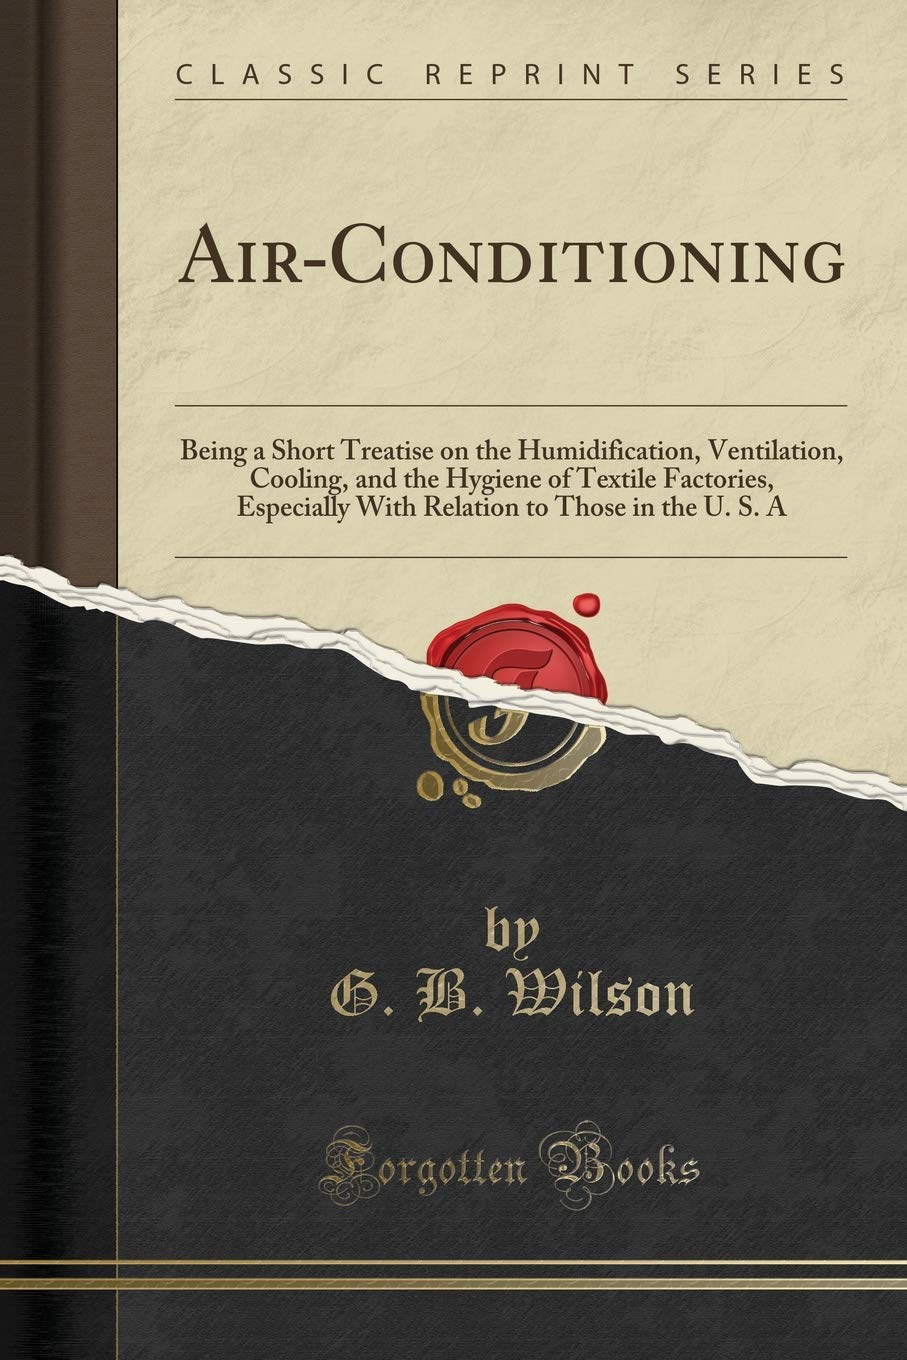 Air-Conditioning: Being a Short Treatise on the Humidification, Ventilation, Cooling, and the Hygiene of Textile Factories, Especially With Relation to Those in the U. S. A (Classic Reprint) pdf epub